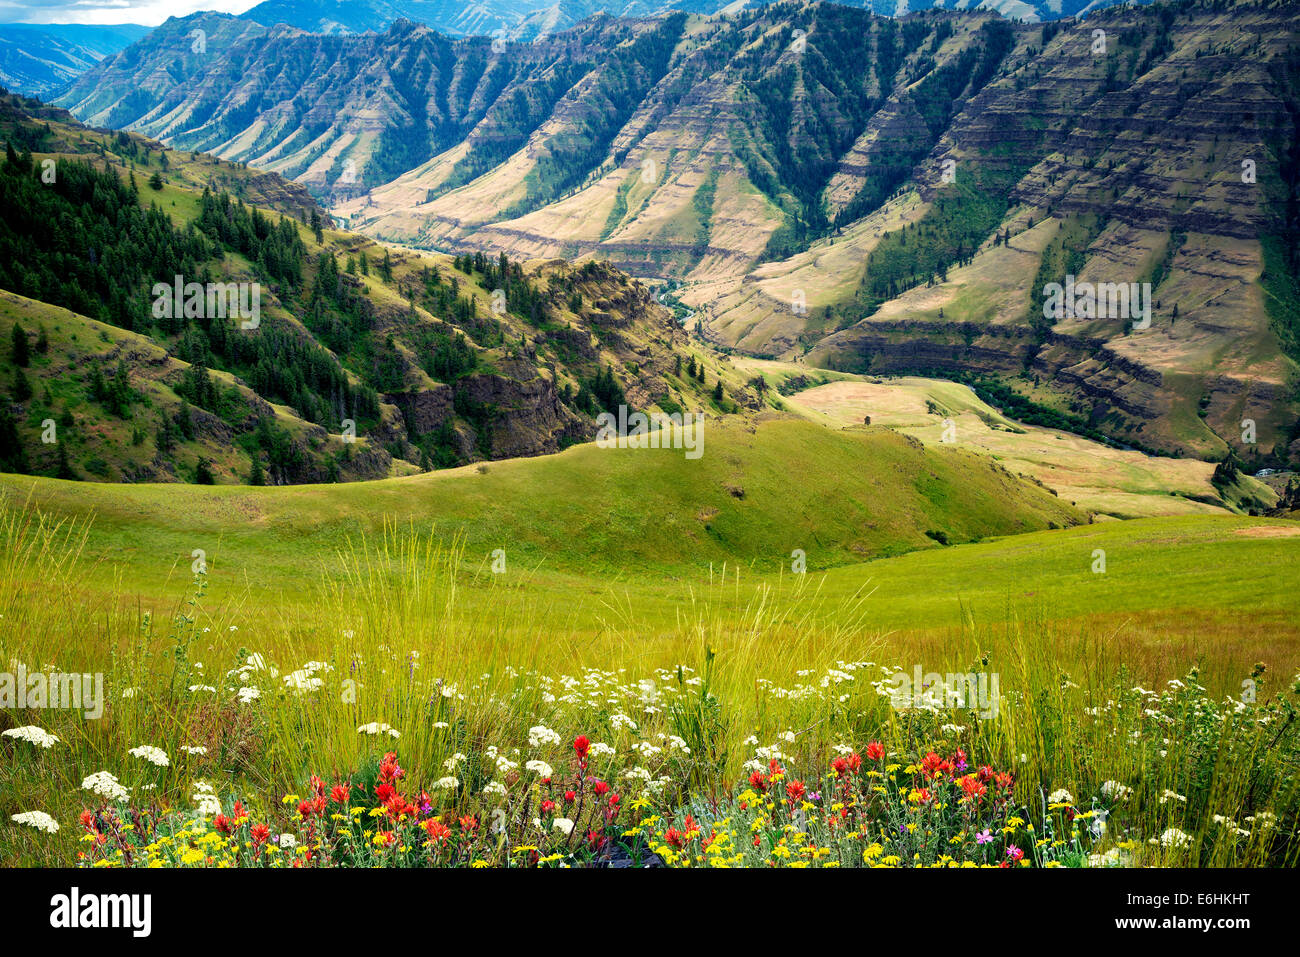 Wildflowers and Imnaha Canyon. Hells Canyon National Recreation Area, Oregon - Stock Image